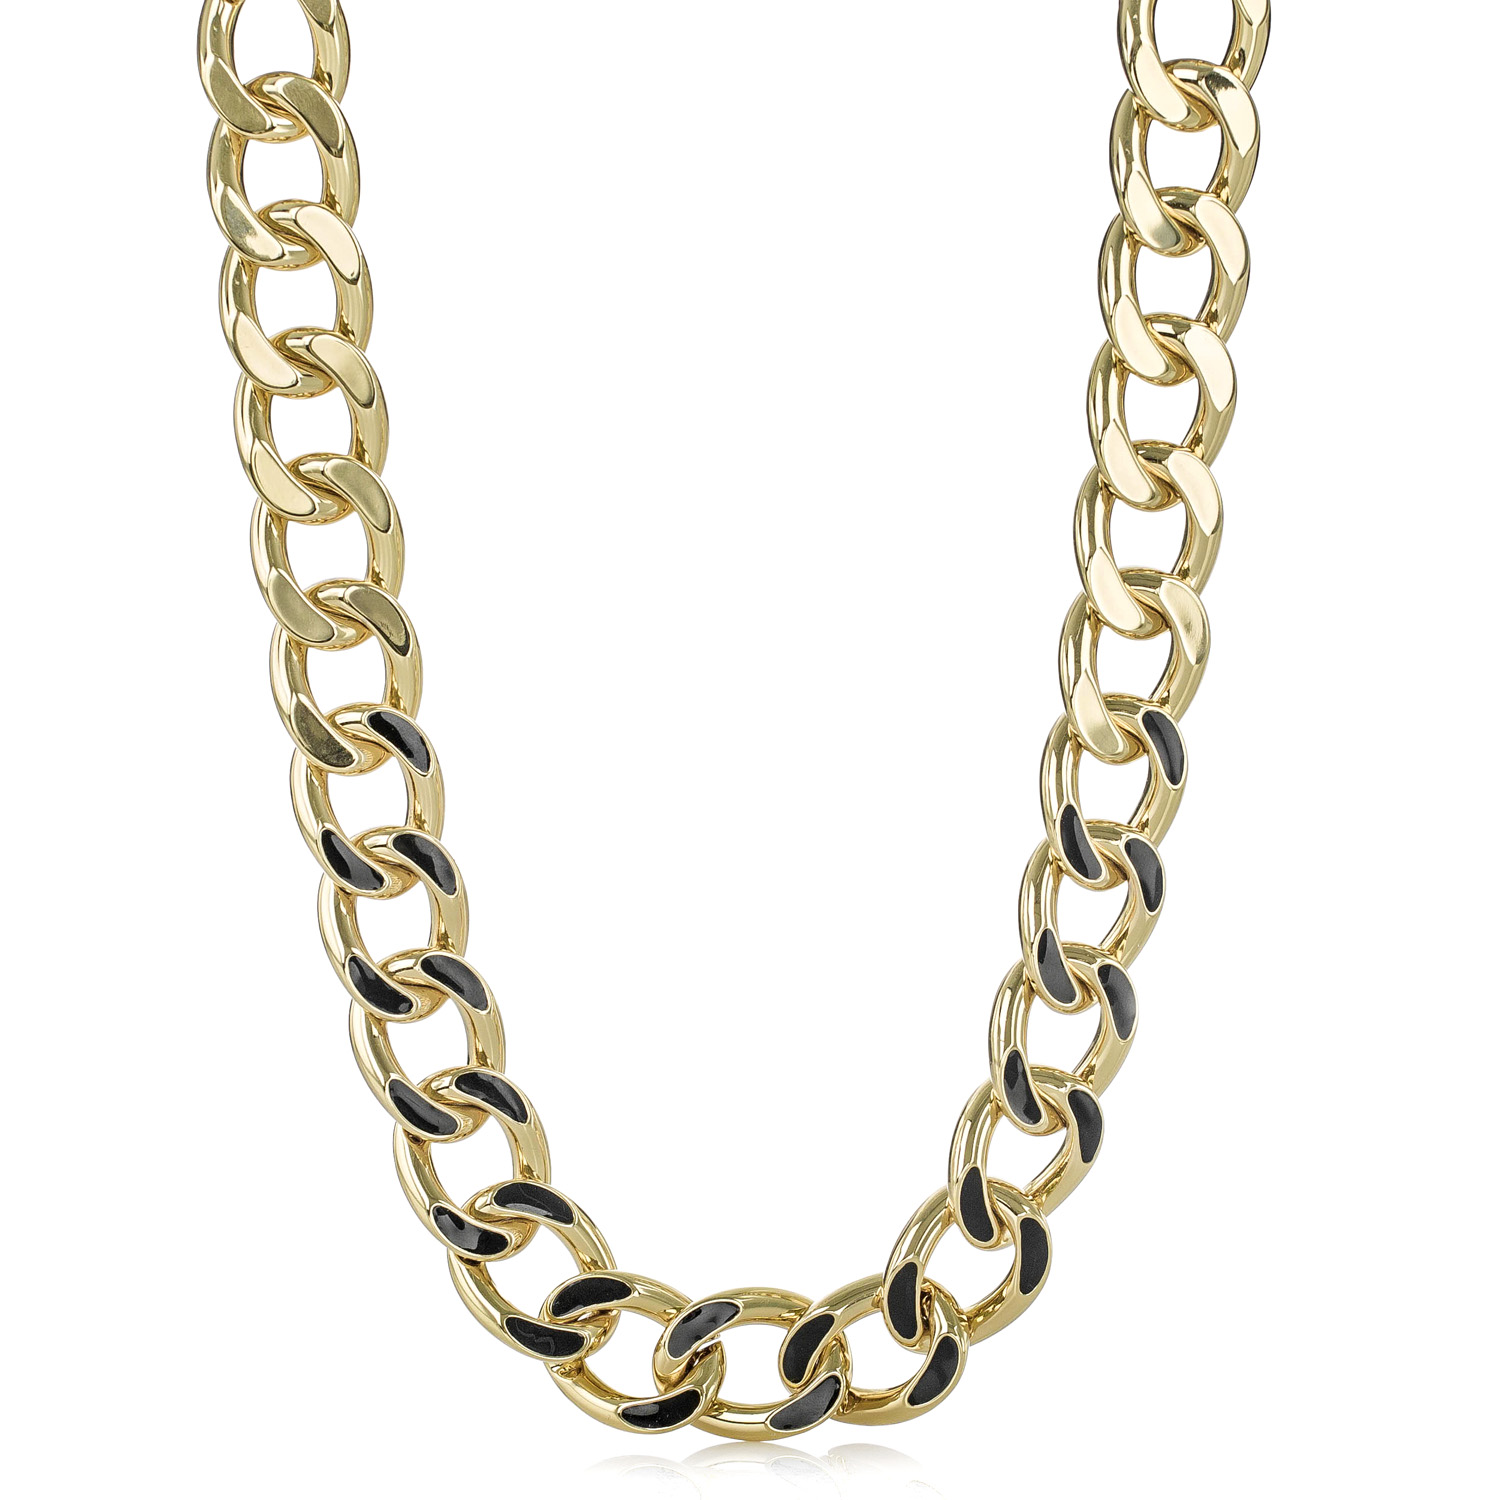 curb necklace main hollow gold chain wide for women men